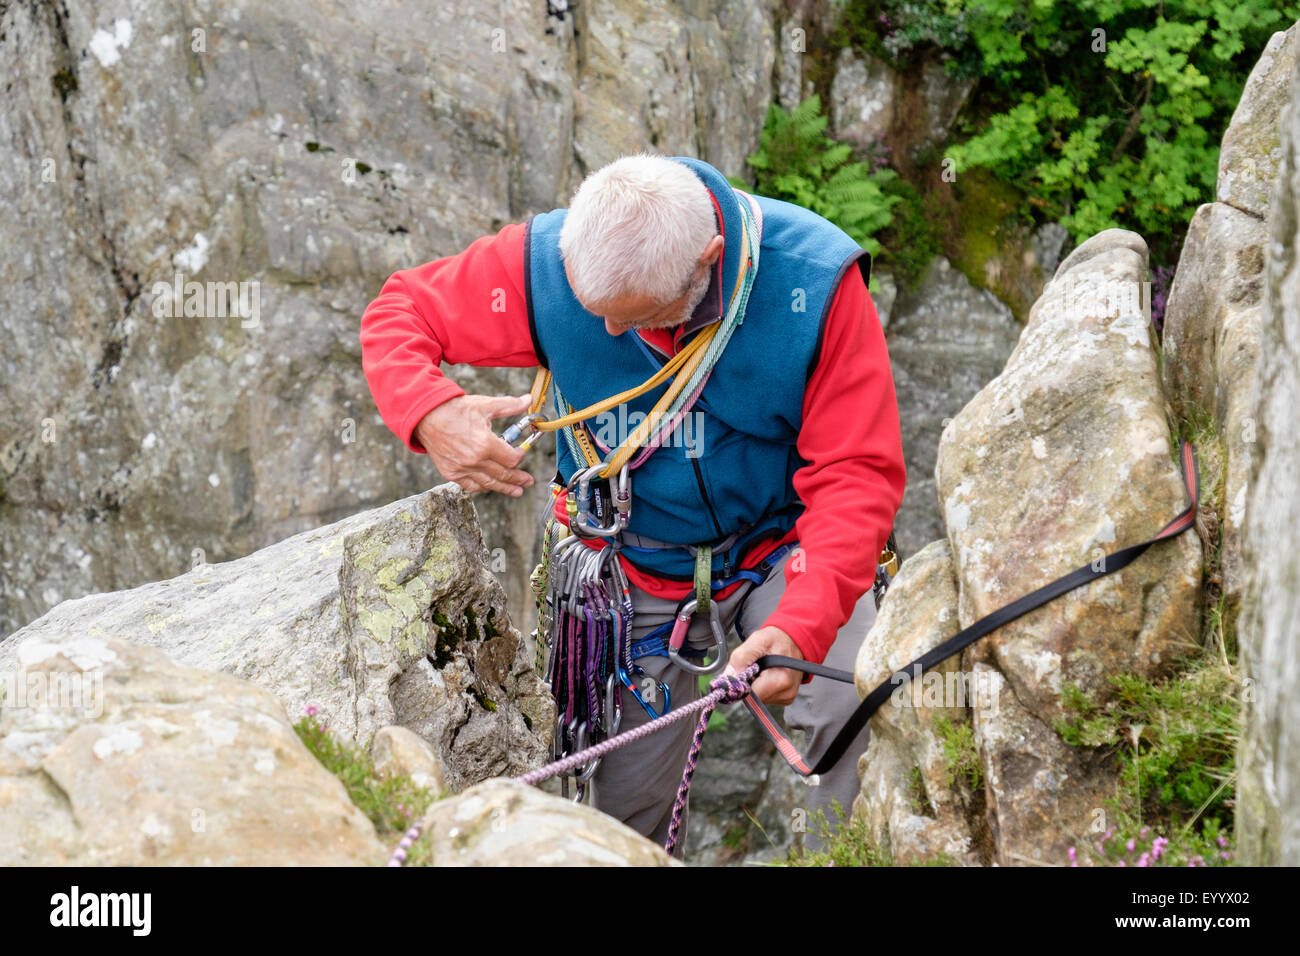 Experienced rock climber wearing a climbing harness preparing a belay tying in with a top rope tape and karabiners. - Stock Image